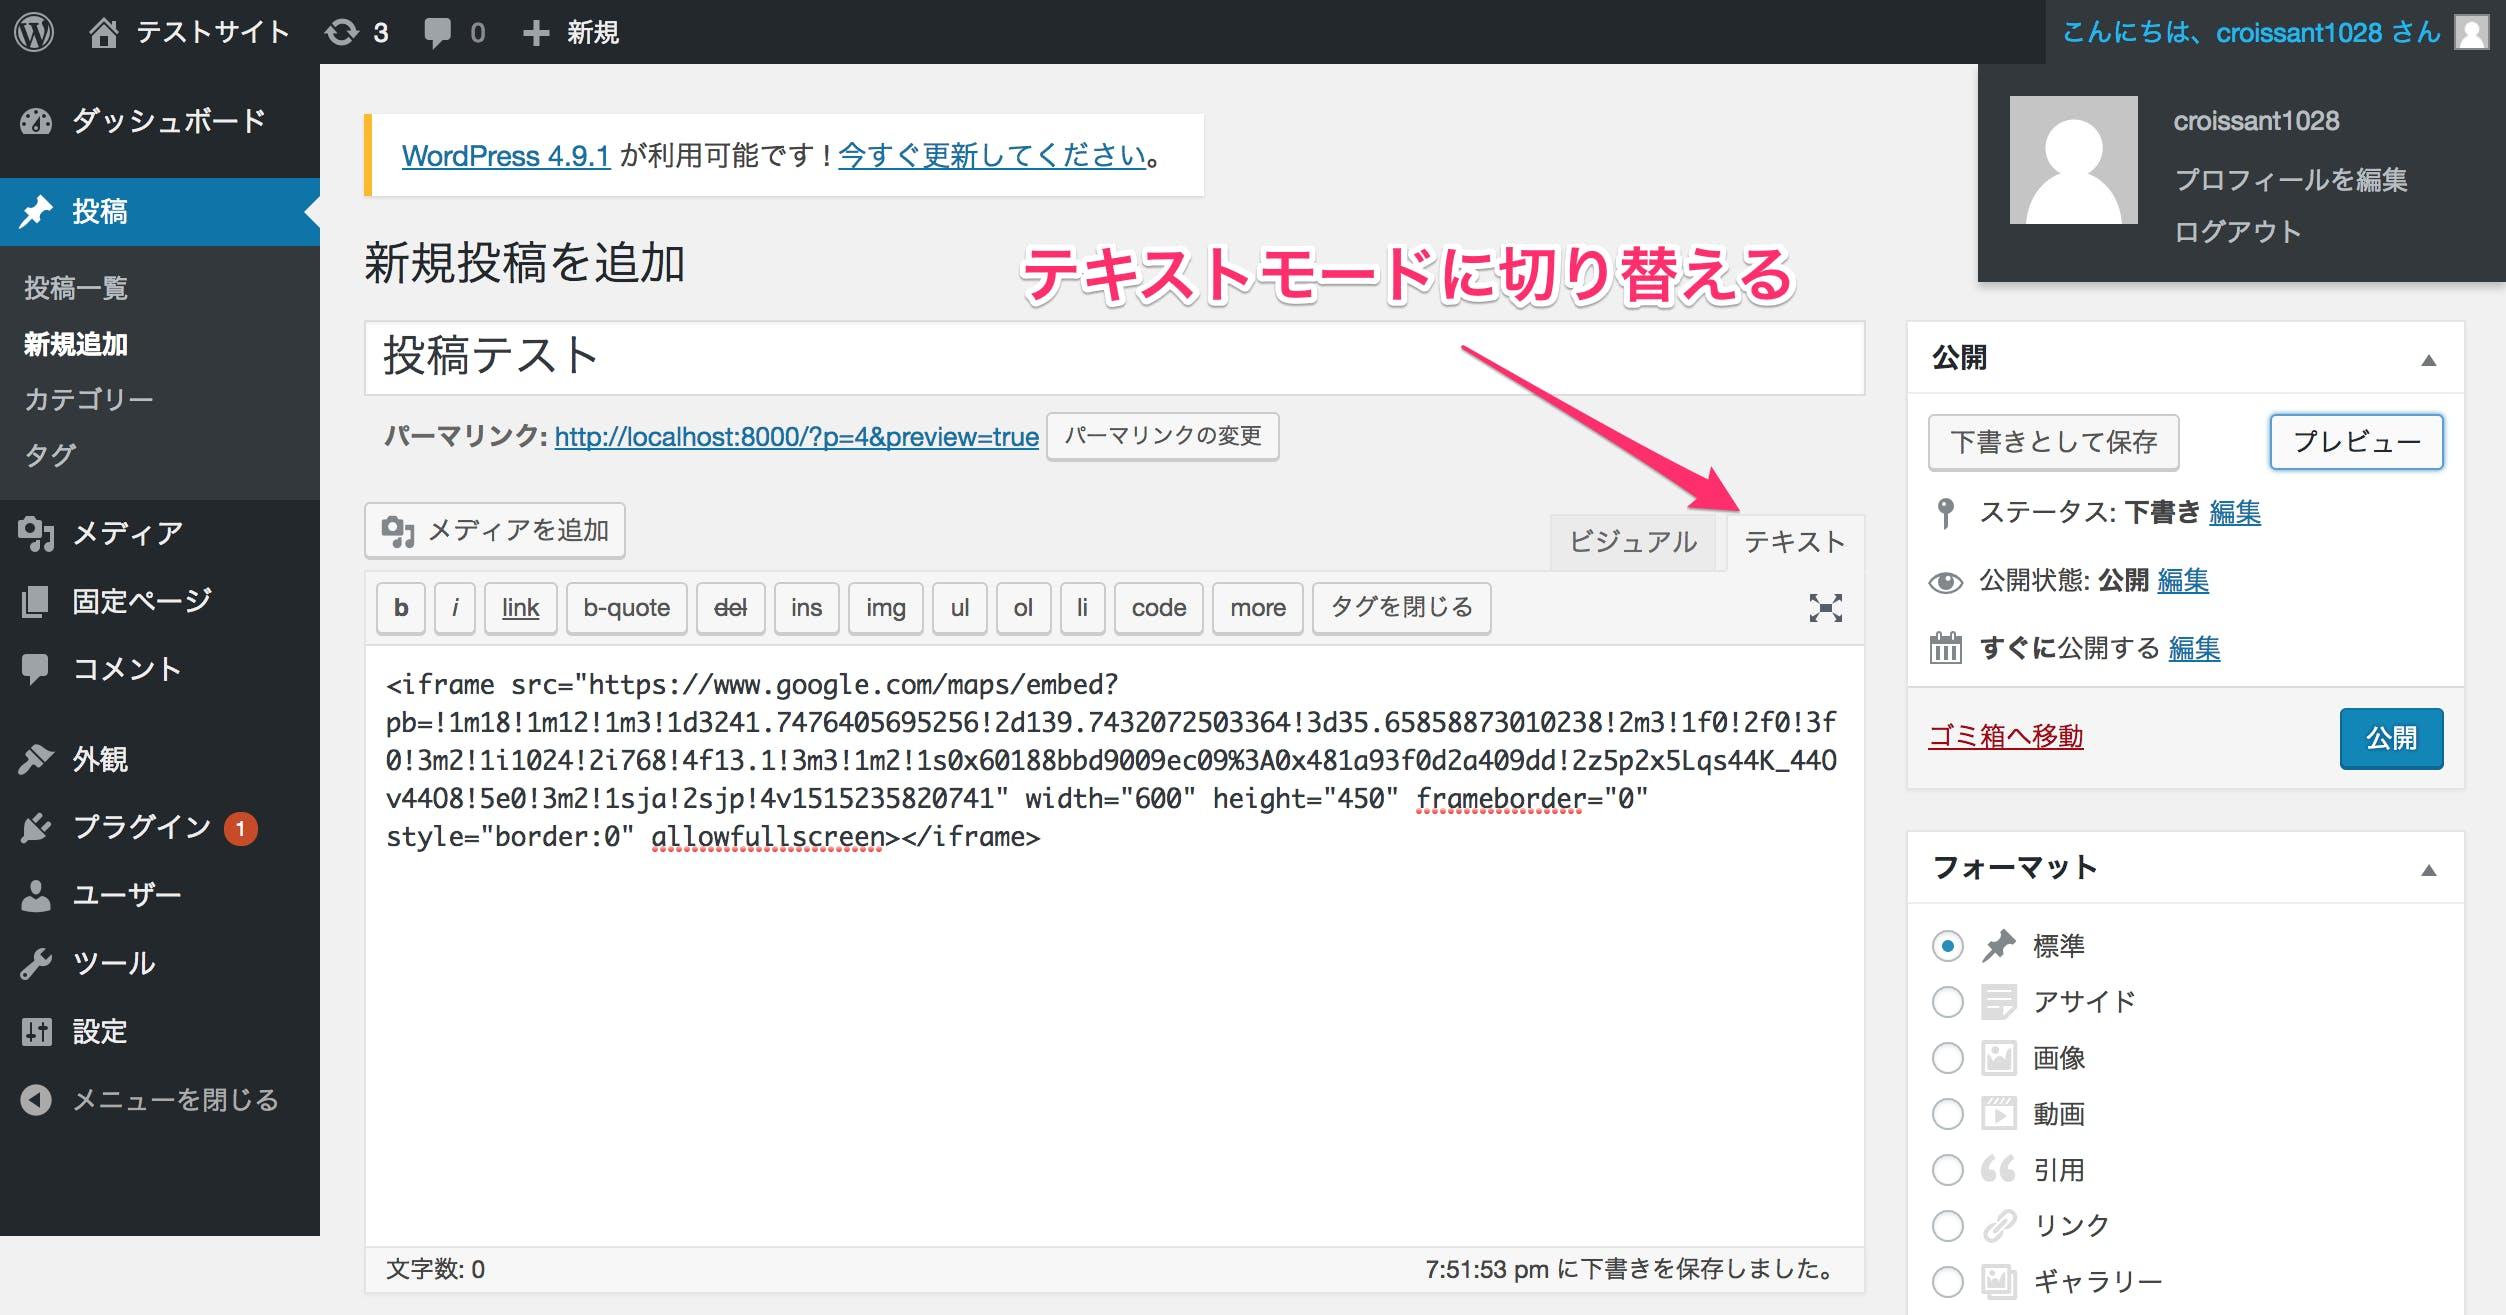 FireShot_Capture_6_-_新規投稿を追加_‹_テストサイト_—_WordPress_-_http___localhost_8000_wp-admin_post-new_php.png